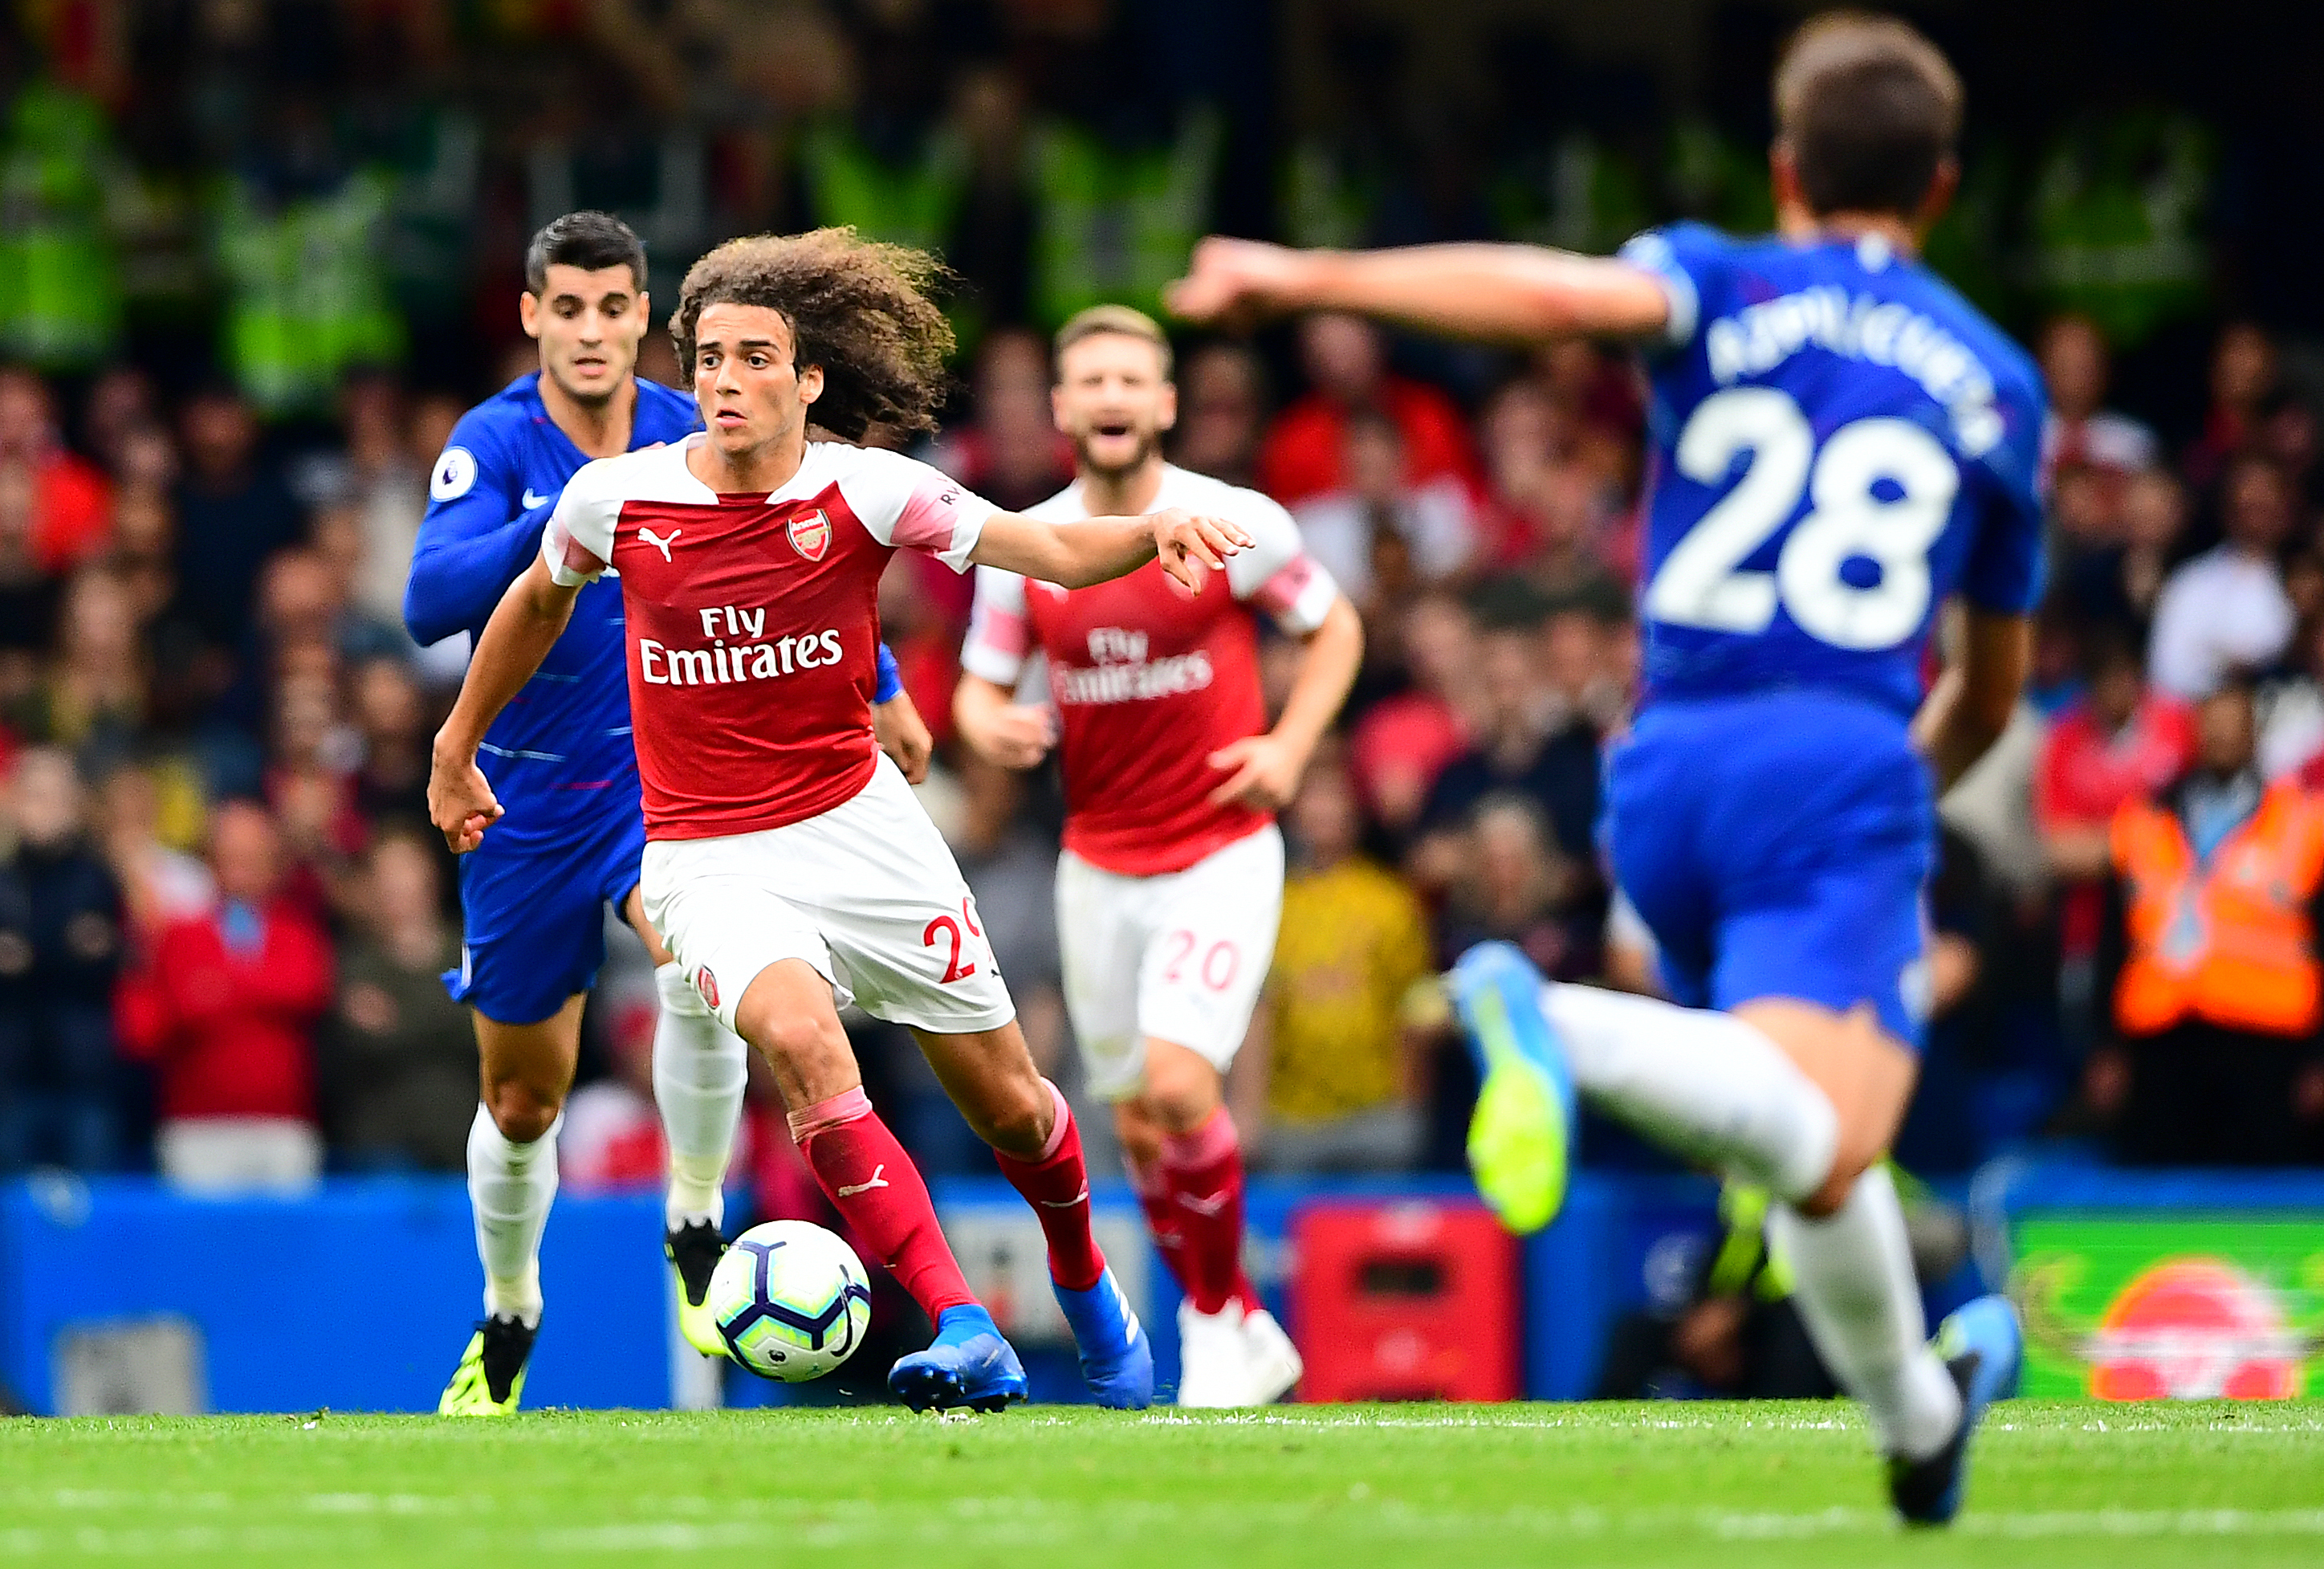 Guendouzi has impressed so far for Arsenal. Image: PA Images